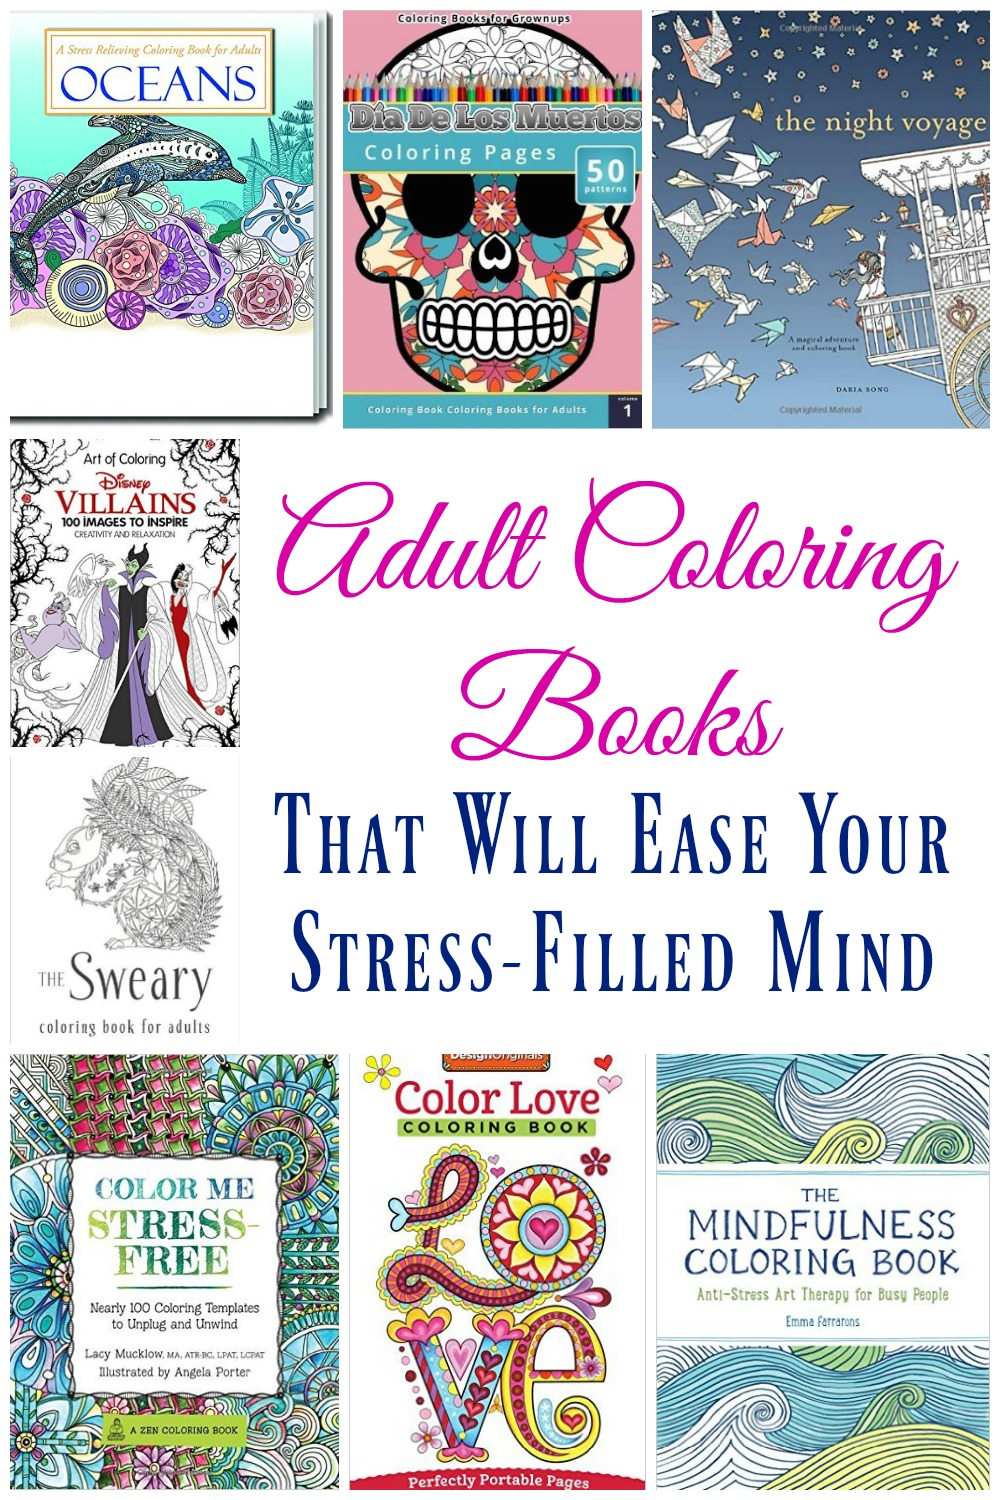 Coloring isn't just for children any longer! Coloring can be a great way to relieve stress and these adult coloring books are a nice change of pace!